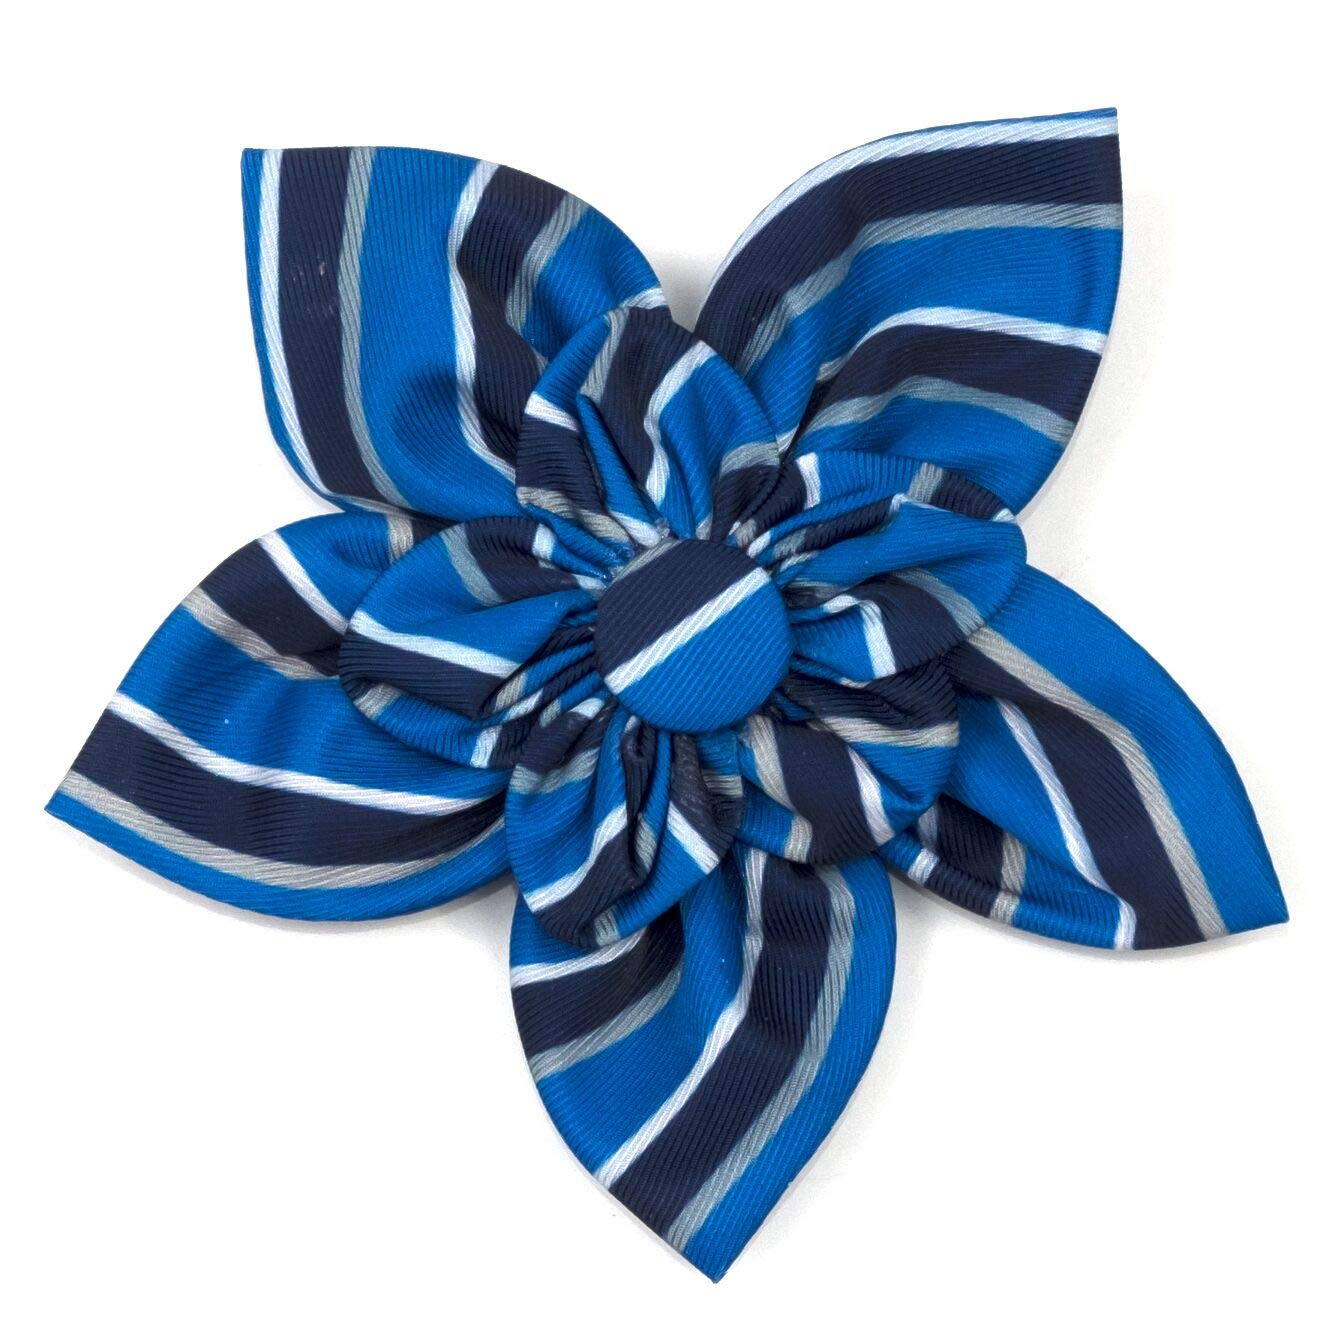 The Worthy Dog Prep Stripe bluee and Black Pattern Flower for Petsbluee, LG